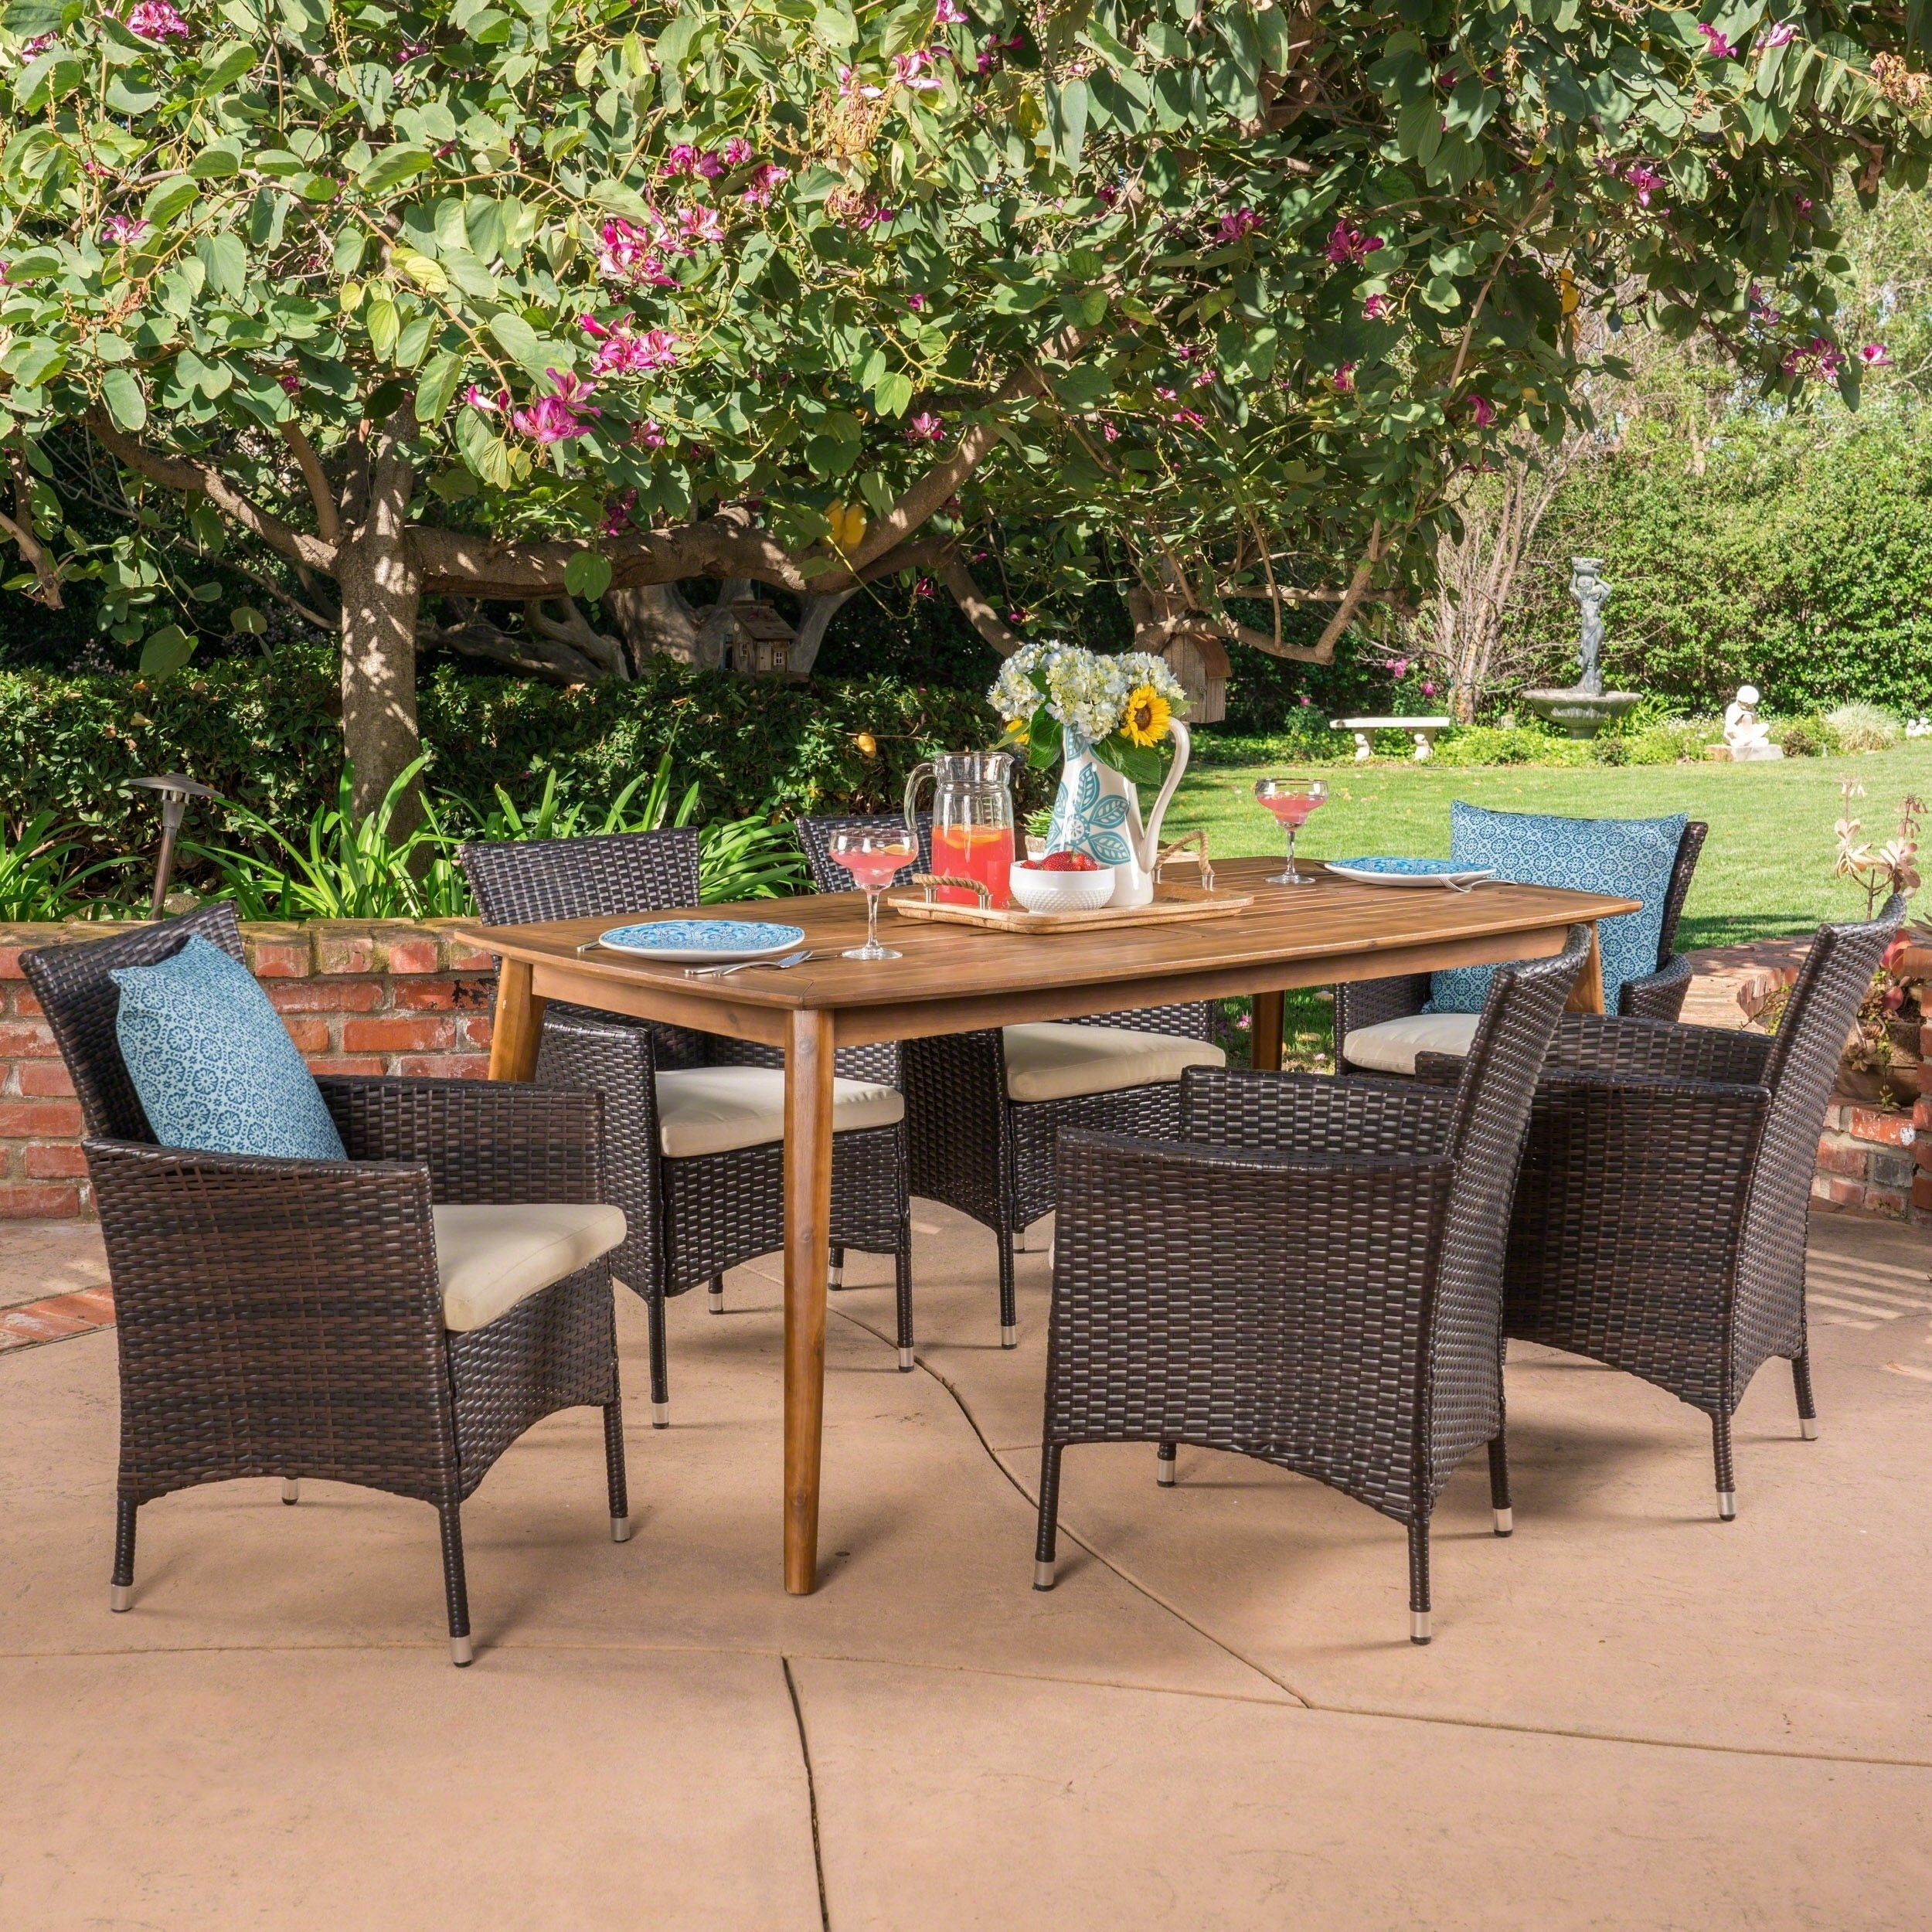 Shop Jaxon Outdoor 7 Piece Multibrown Pe Wicker Dining Set With For Latest Jaxon Grey 6 Piece Rectangle Extension Dining Sets With Bench & Uph Chairs (Image 17 of 20)